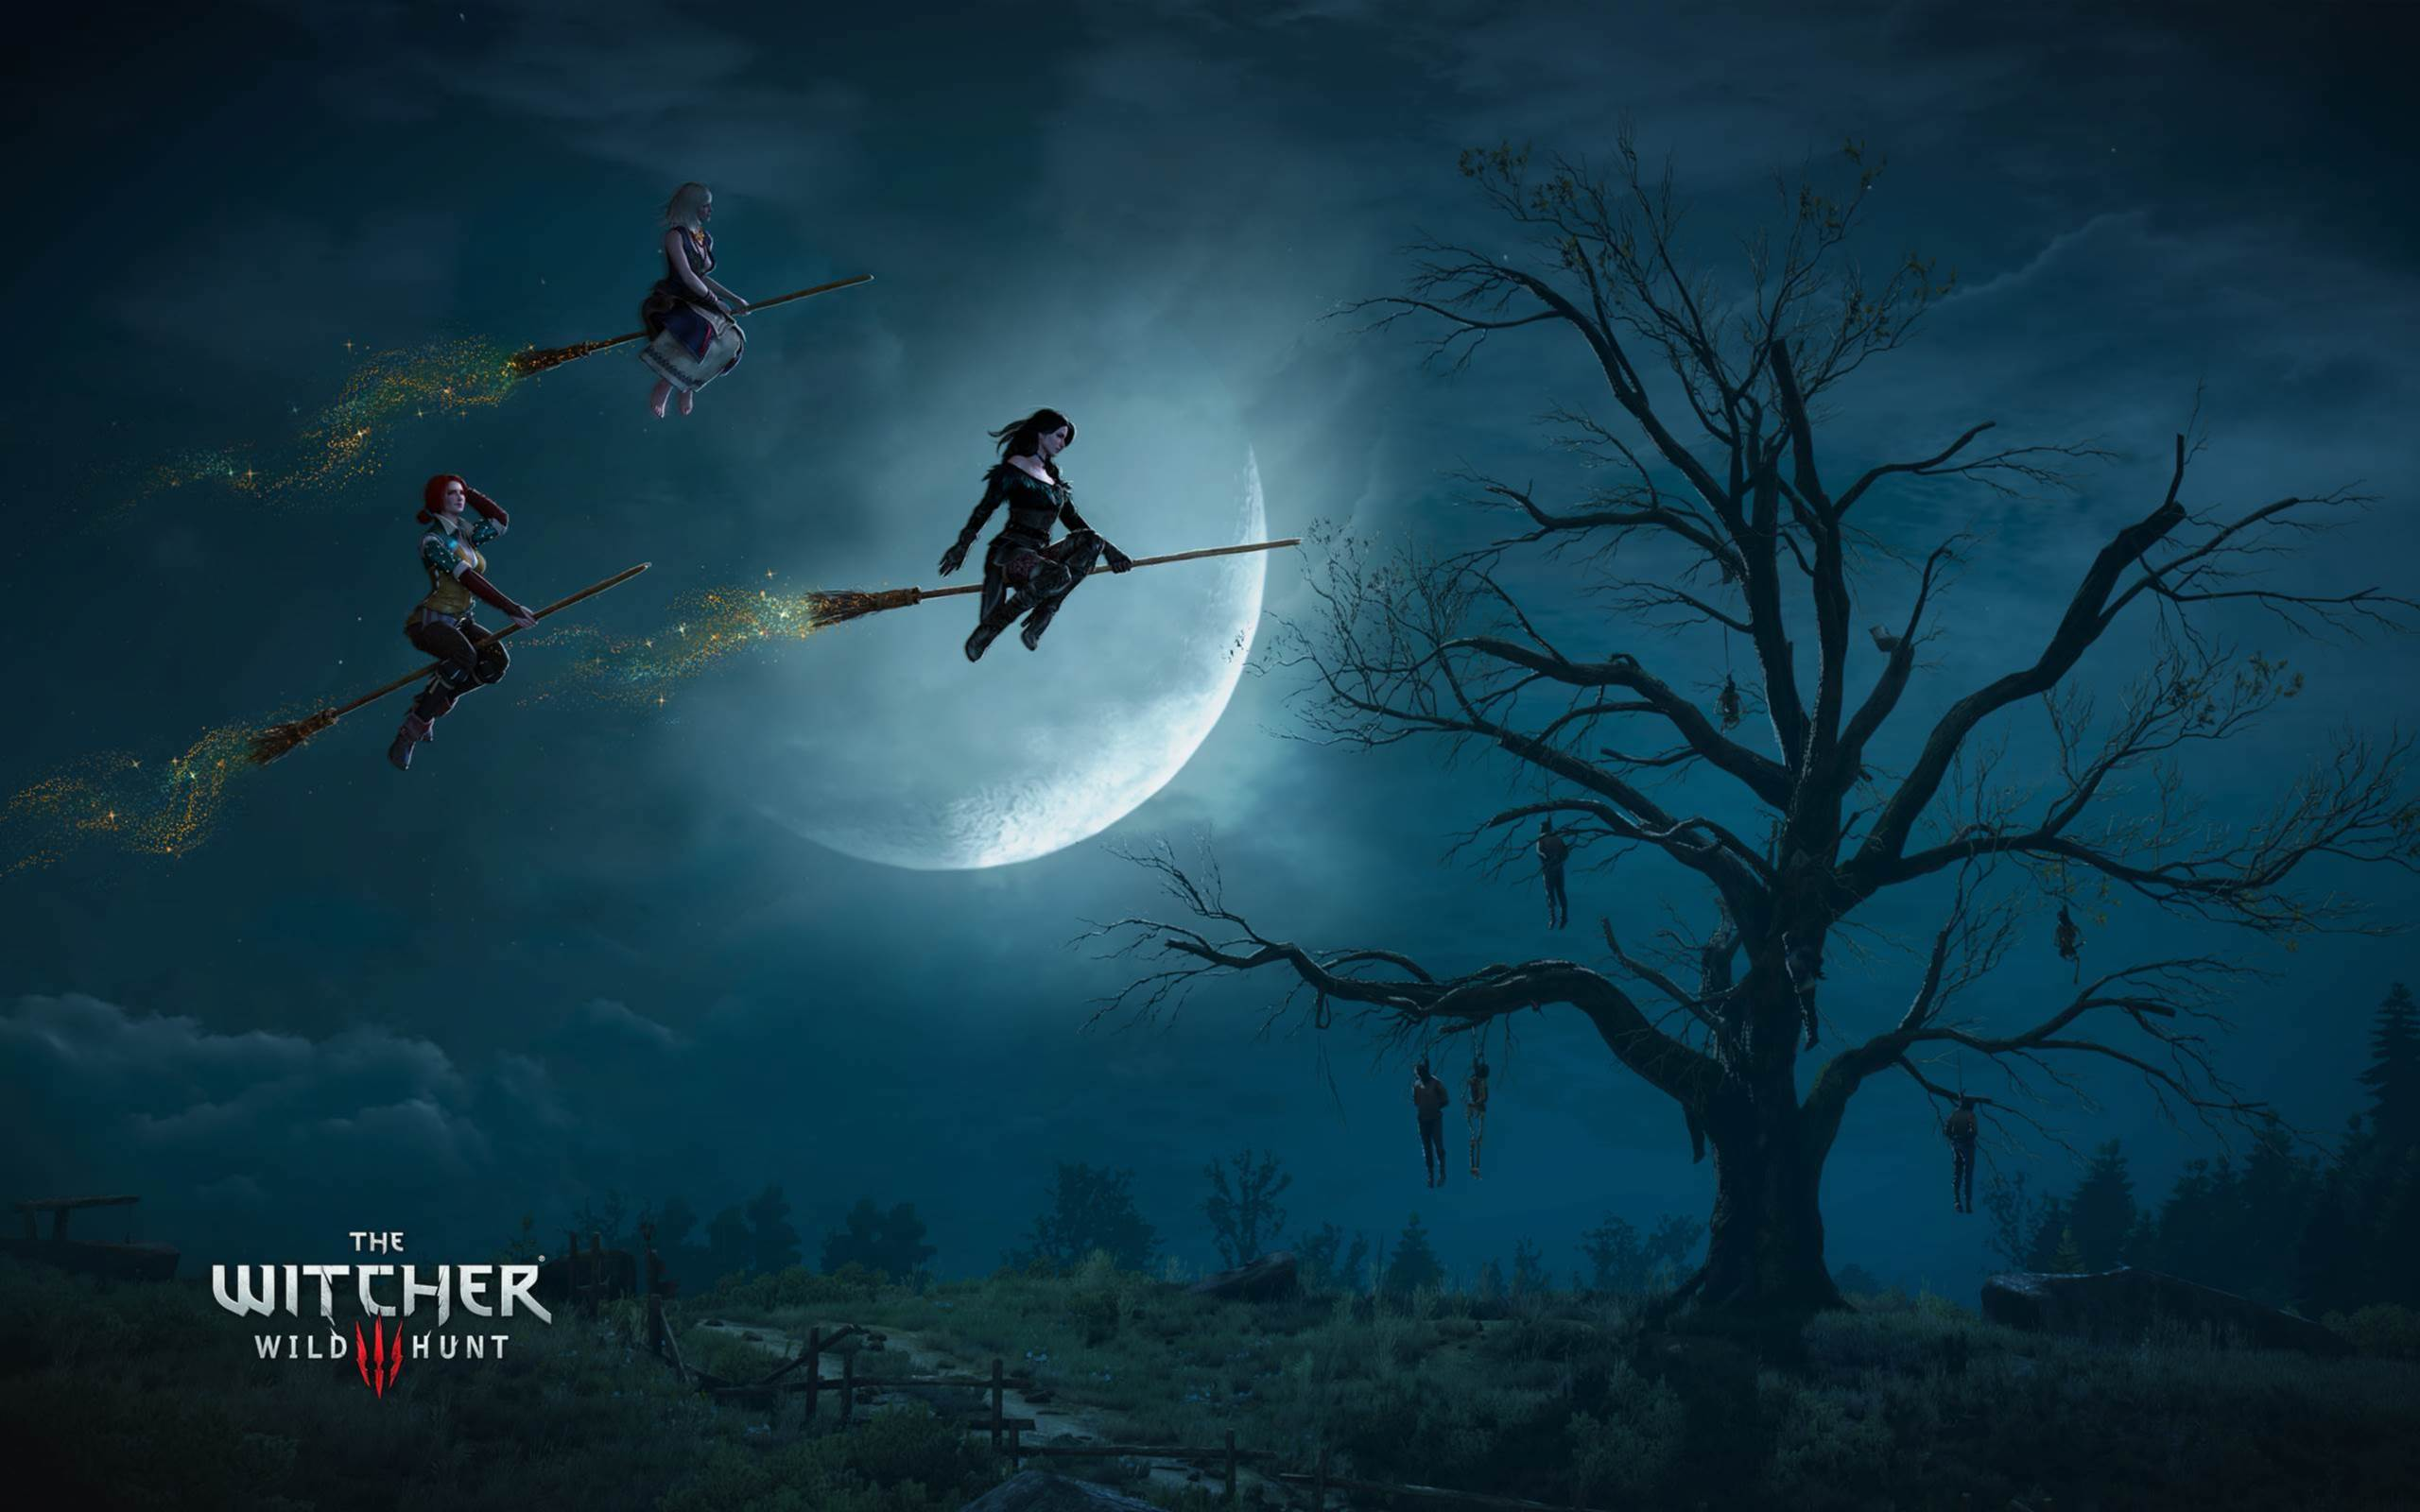 the witcher 3 wild hunt witches wallpapers | hd wallpapers